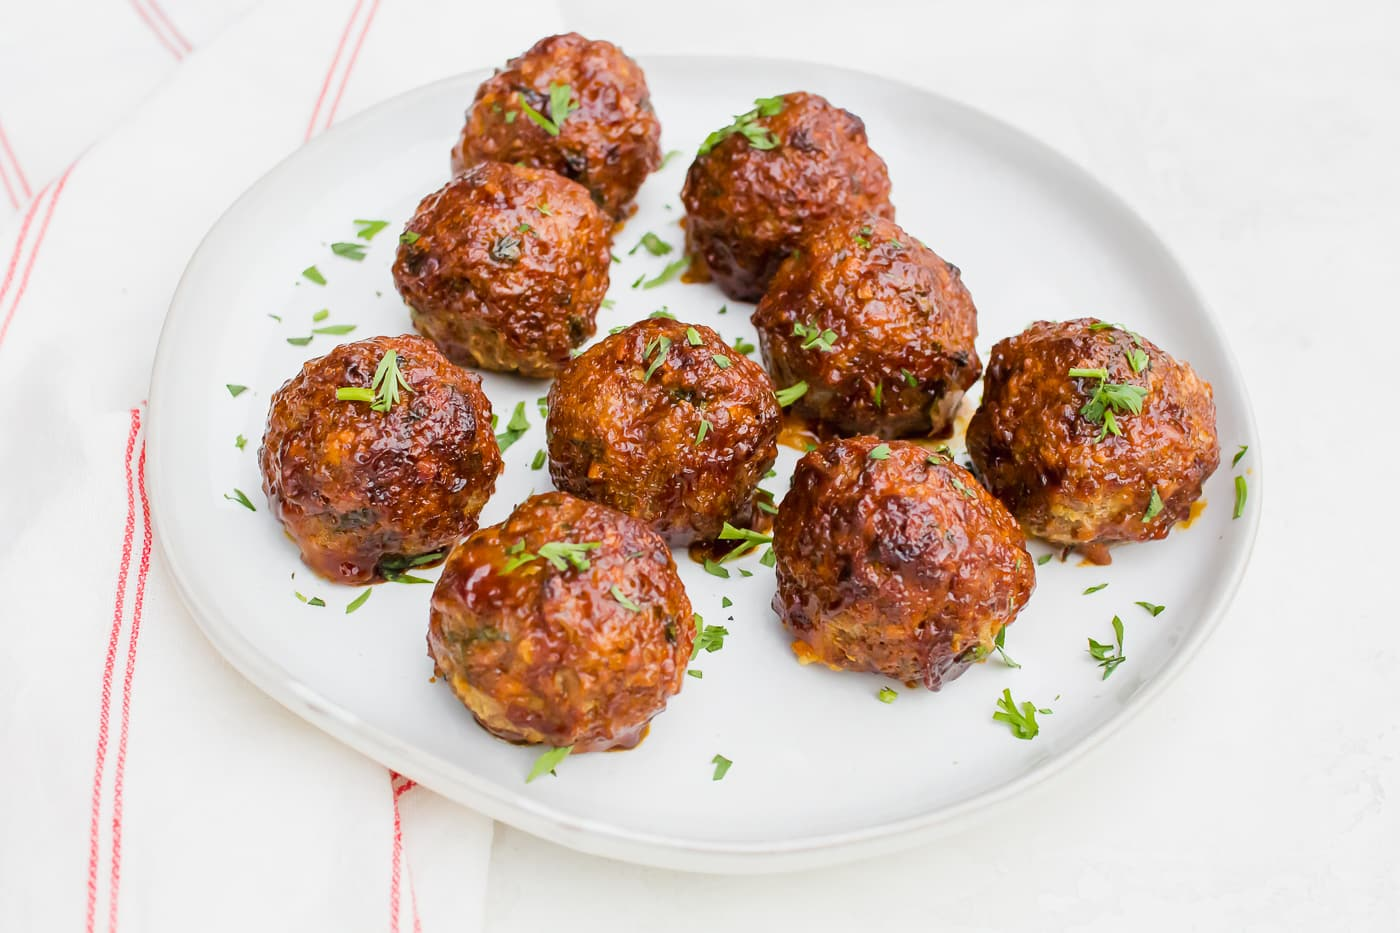 meatballs glazed with a brown-orange sauce and sprinkled with bright green herbs on a white plate